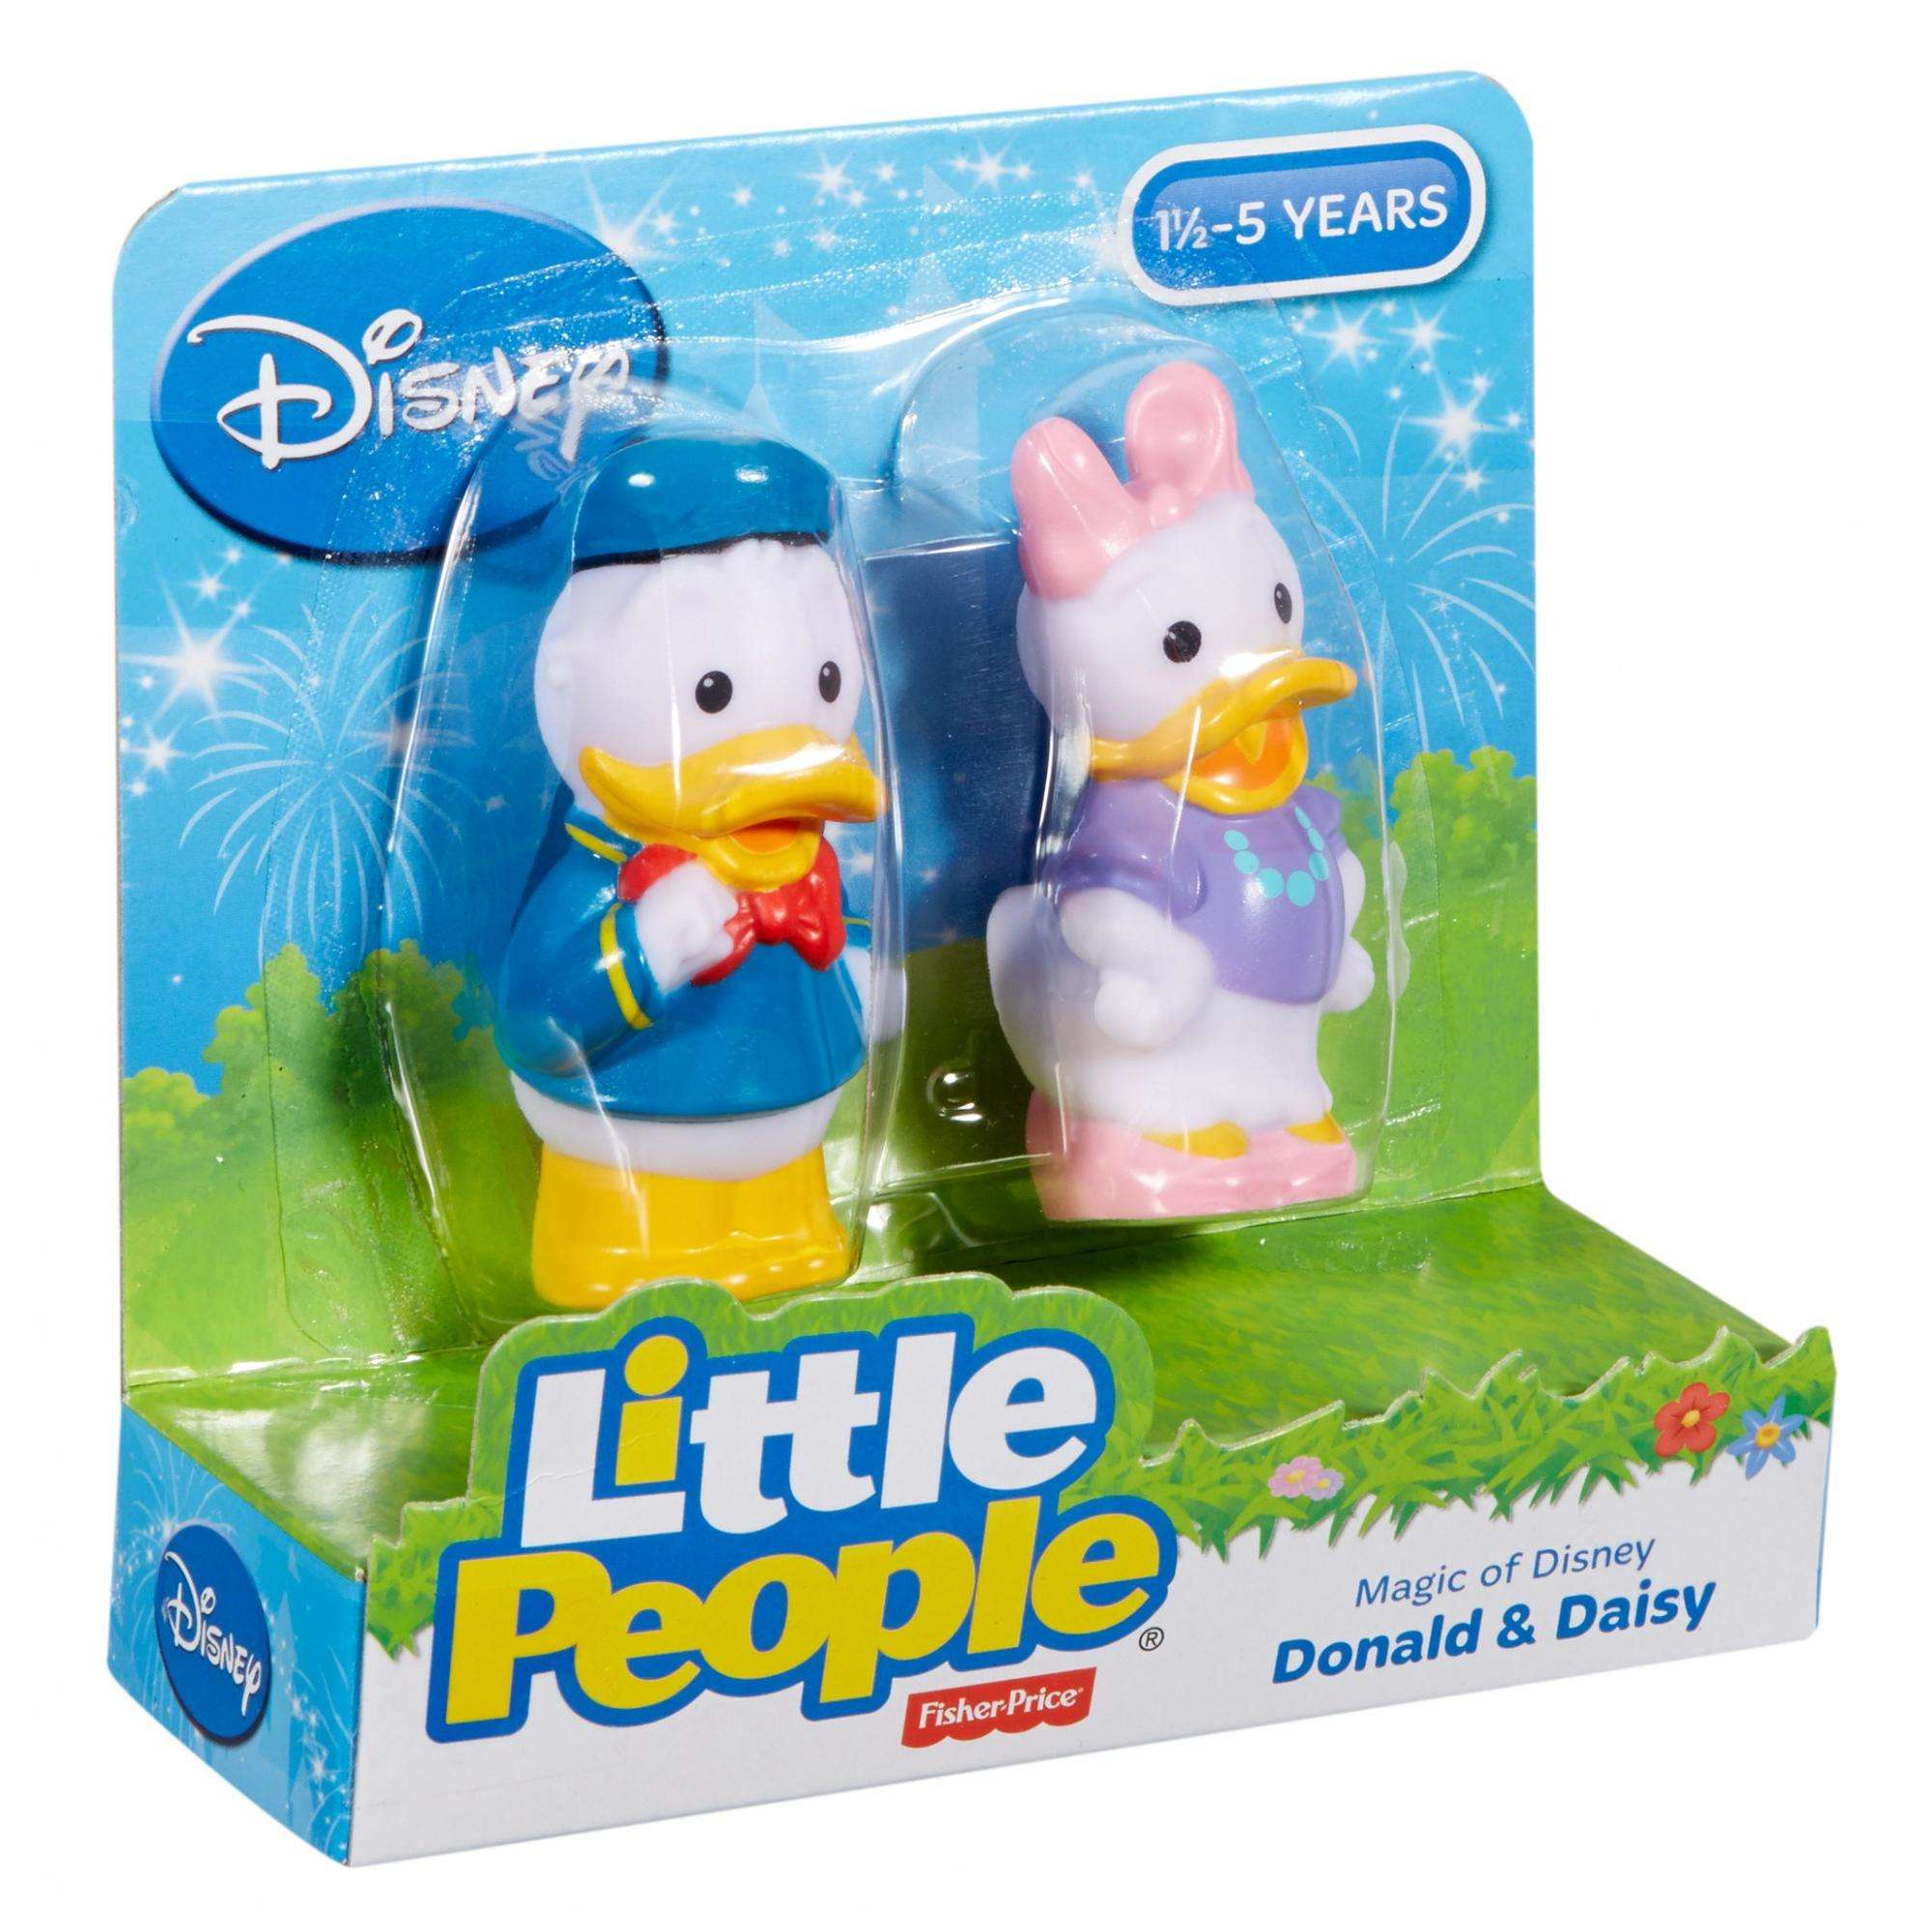 Magic of Disney Donald and Daisy Friends by Little People - Walmart.com